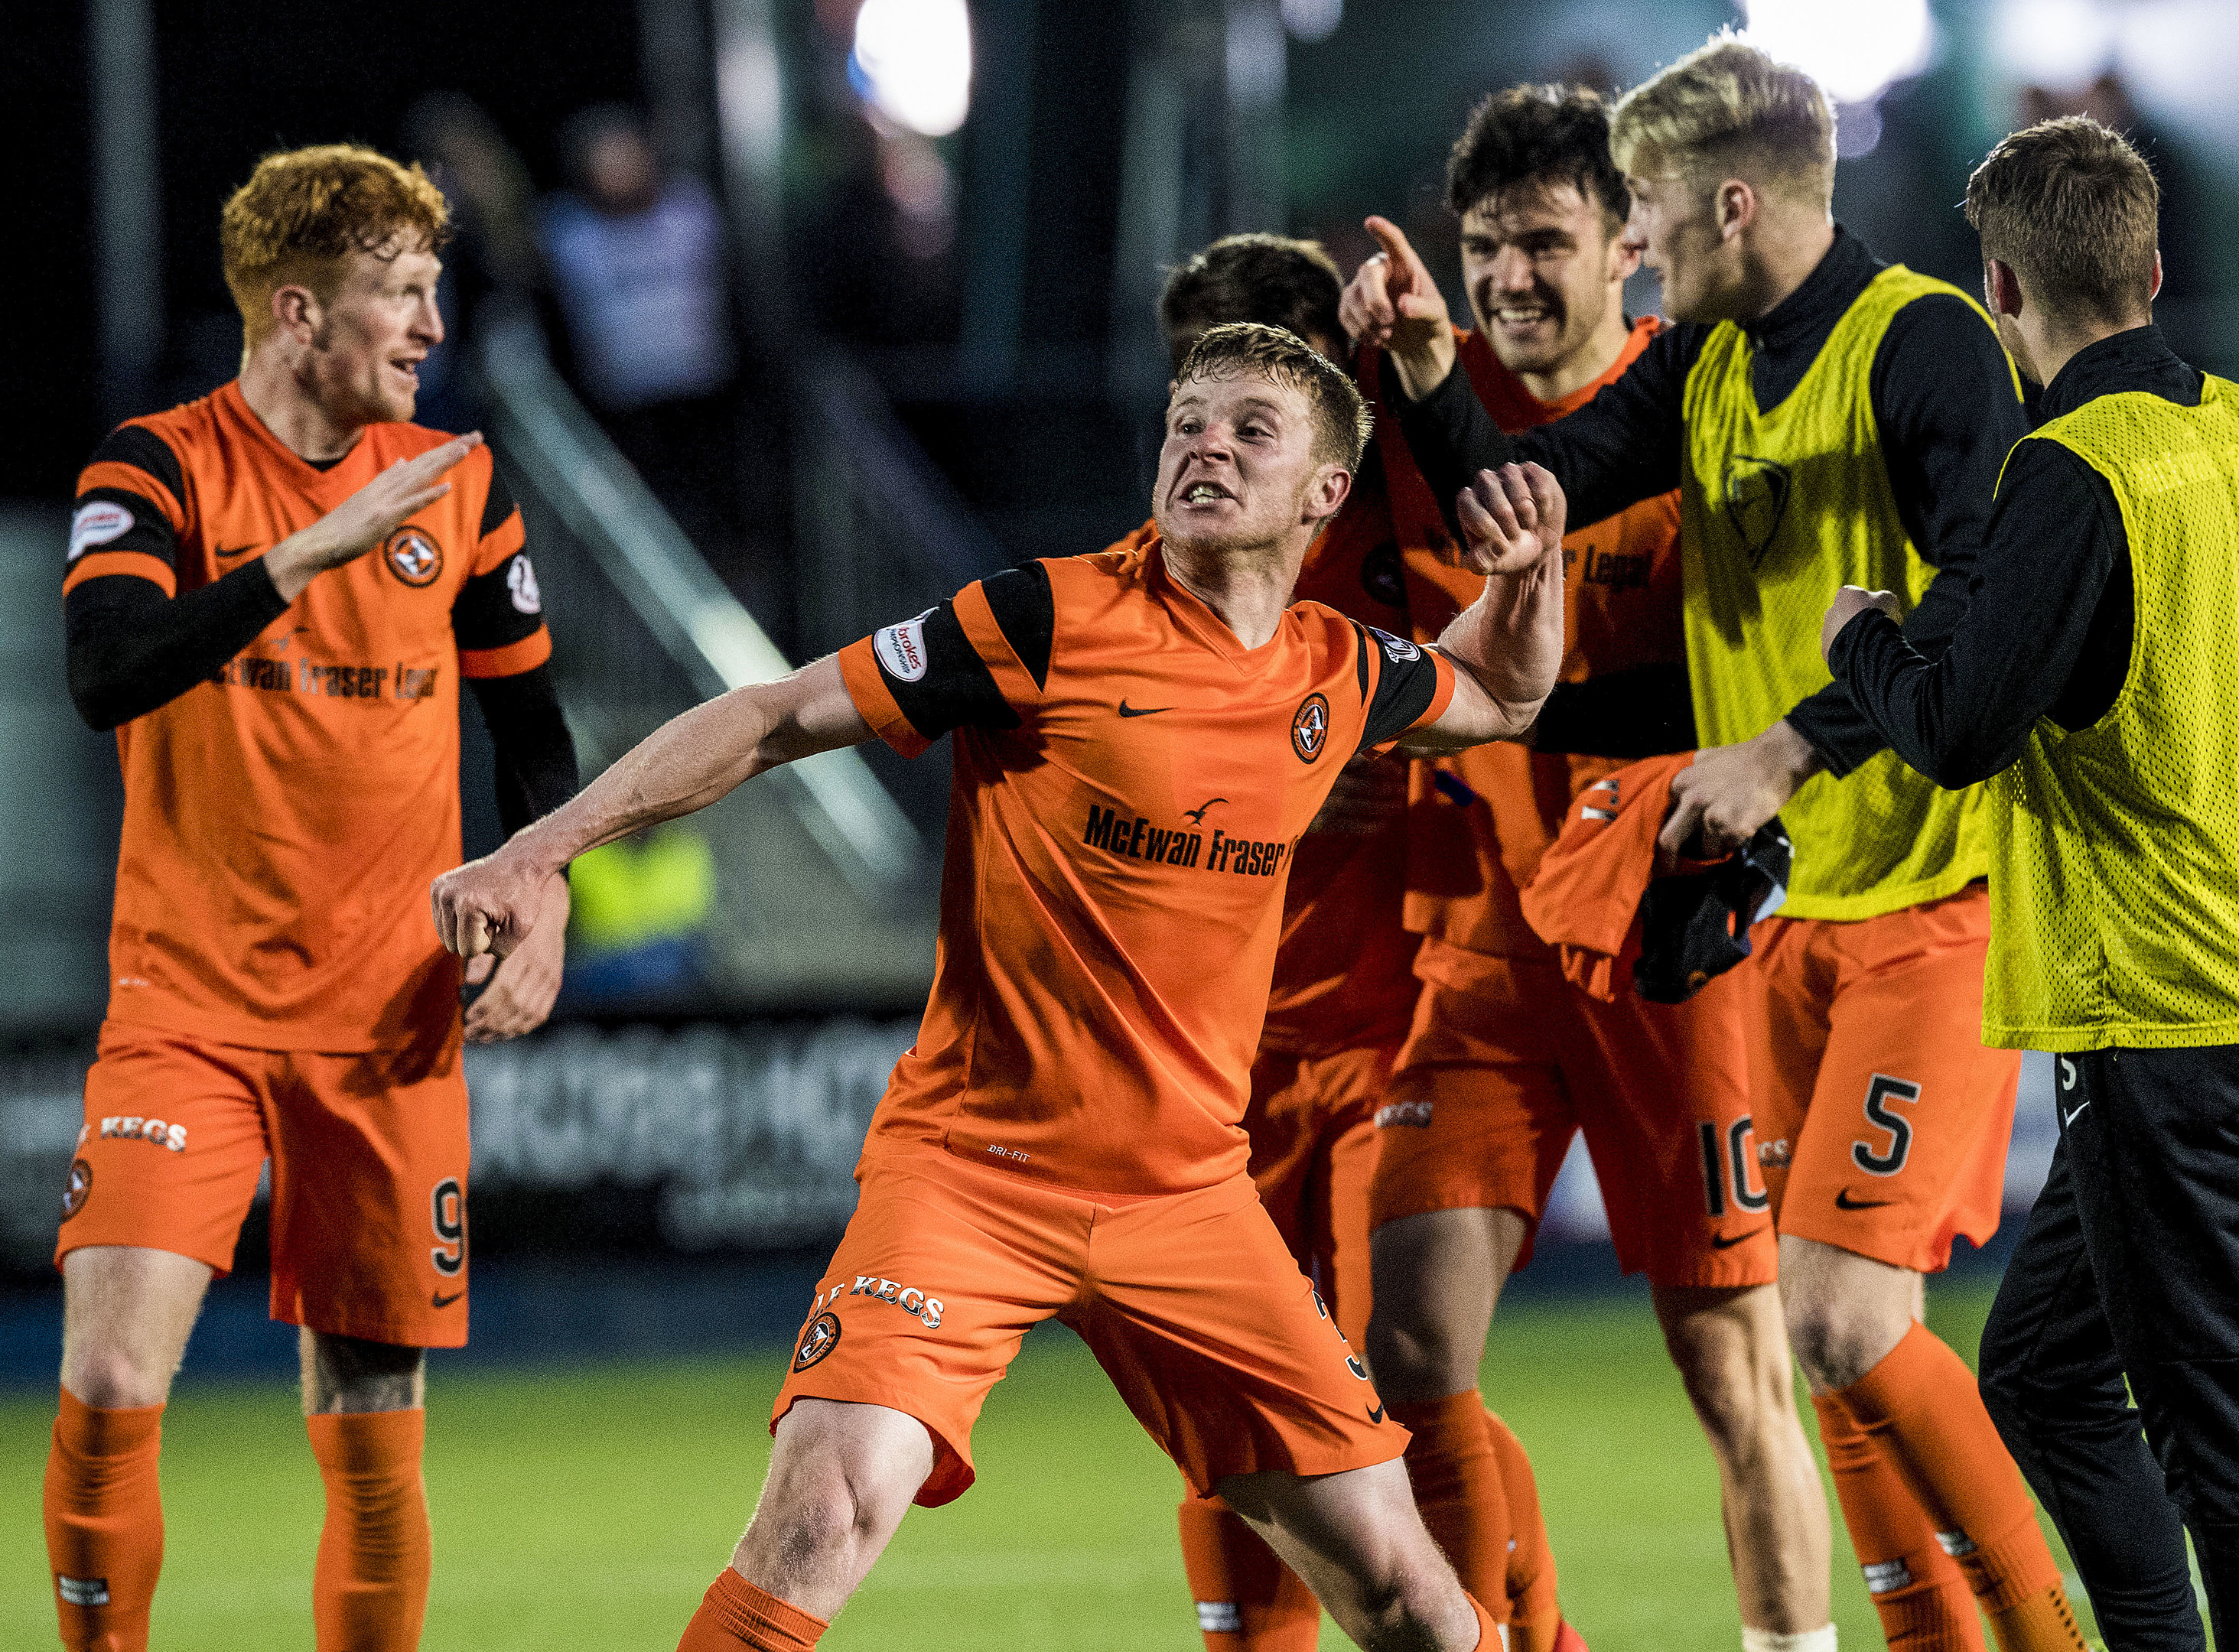 Paul Dixon after securing the victory against Falkirk in the play-offs.